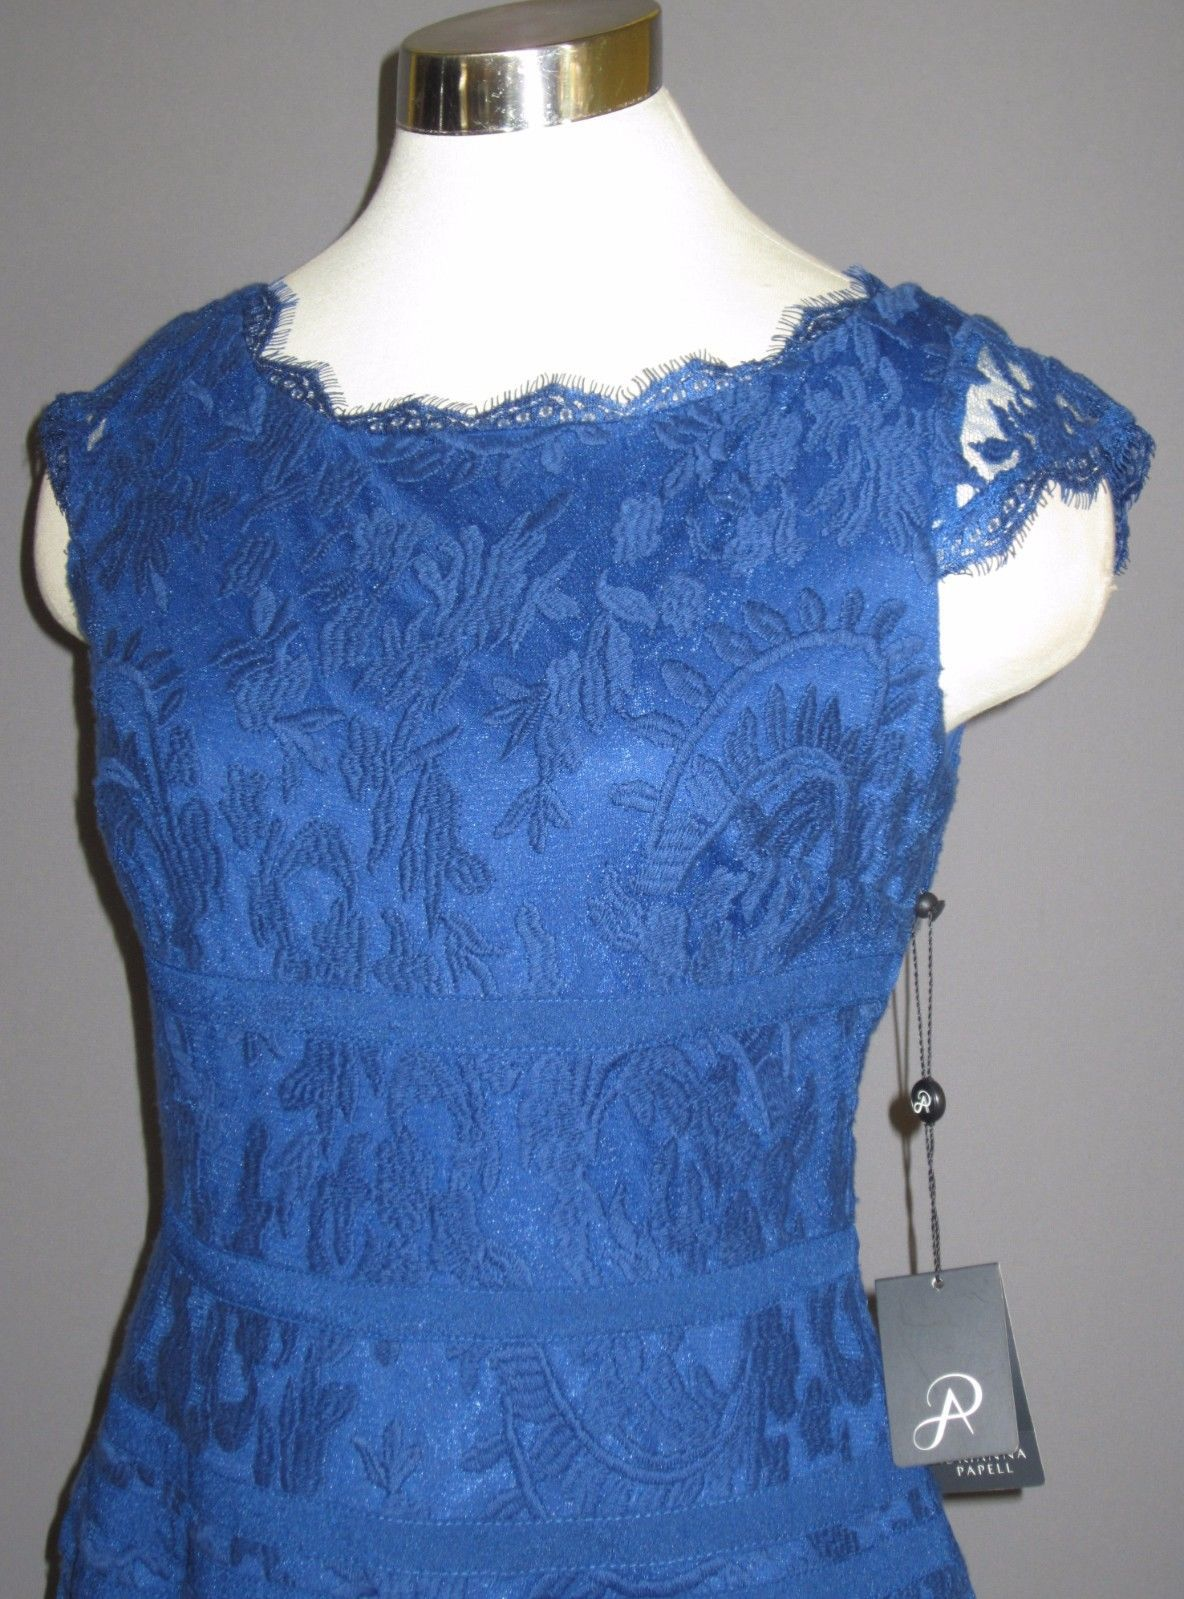 12 ADRIANNA PAPELL Nile Blue Cap Sleeve Lace Fit & Flare Cocktail Dress NWT $180